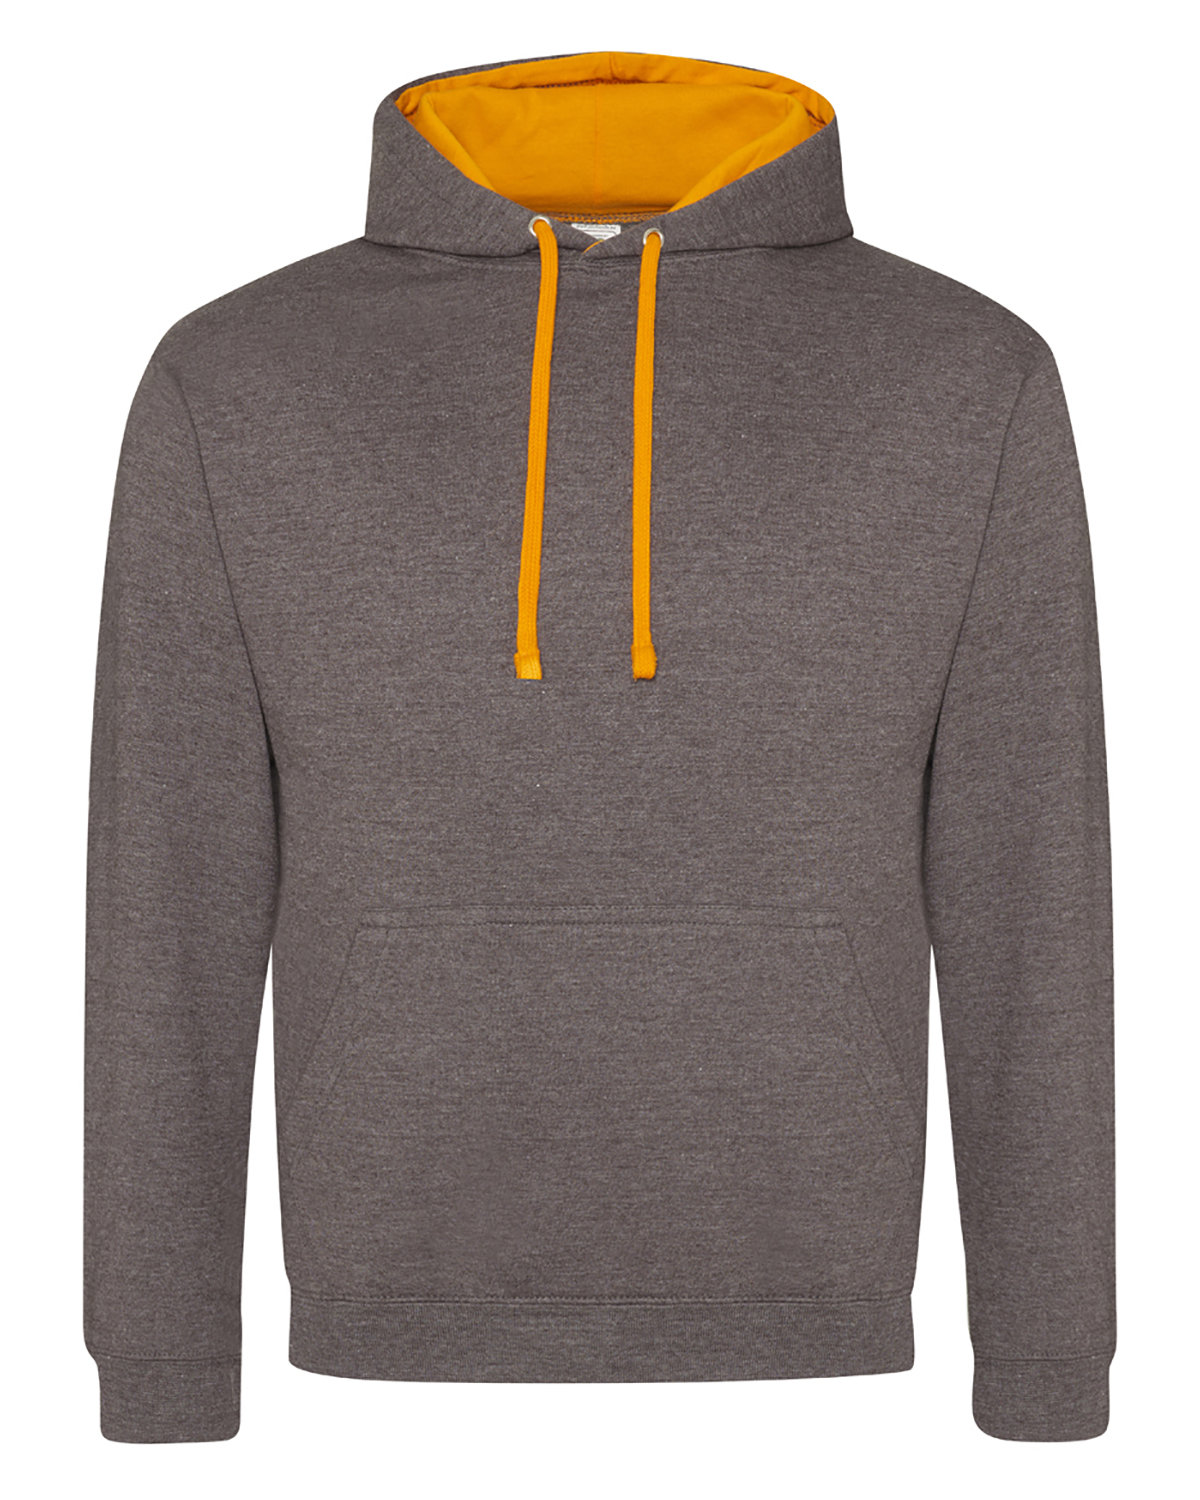 Just Hoods By AWDis Adult 80/20 Midweight Varsity Contrast Hooded Sweatshirt CHRCOL/ ORN CRSH